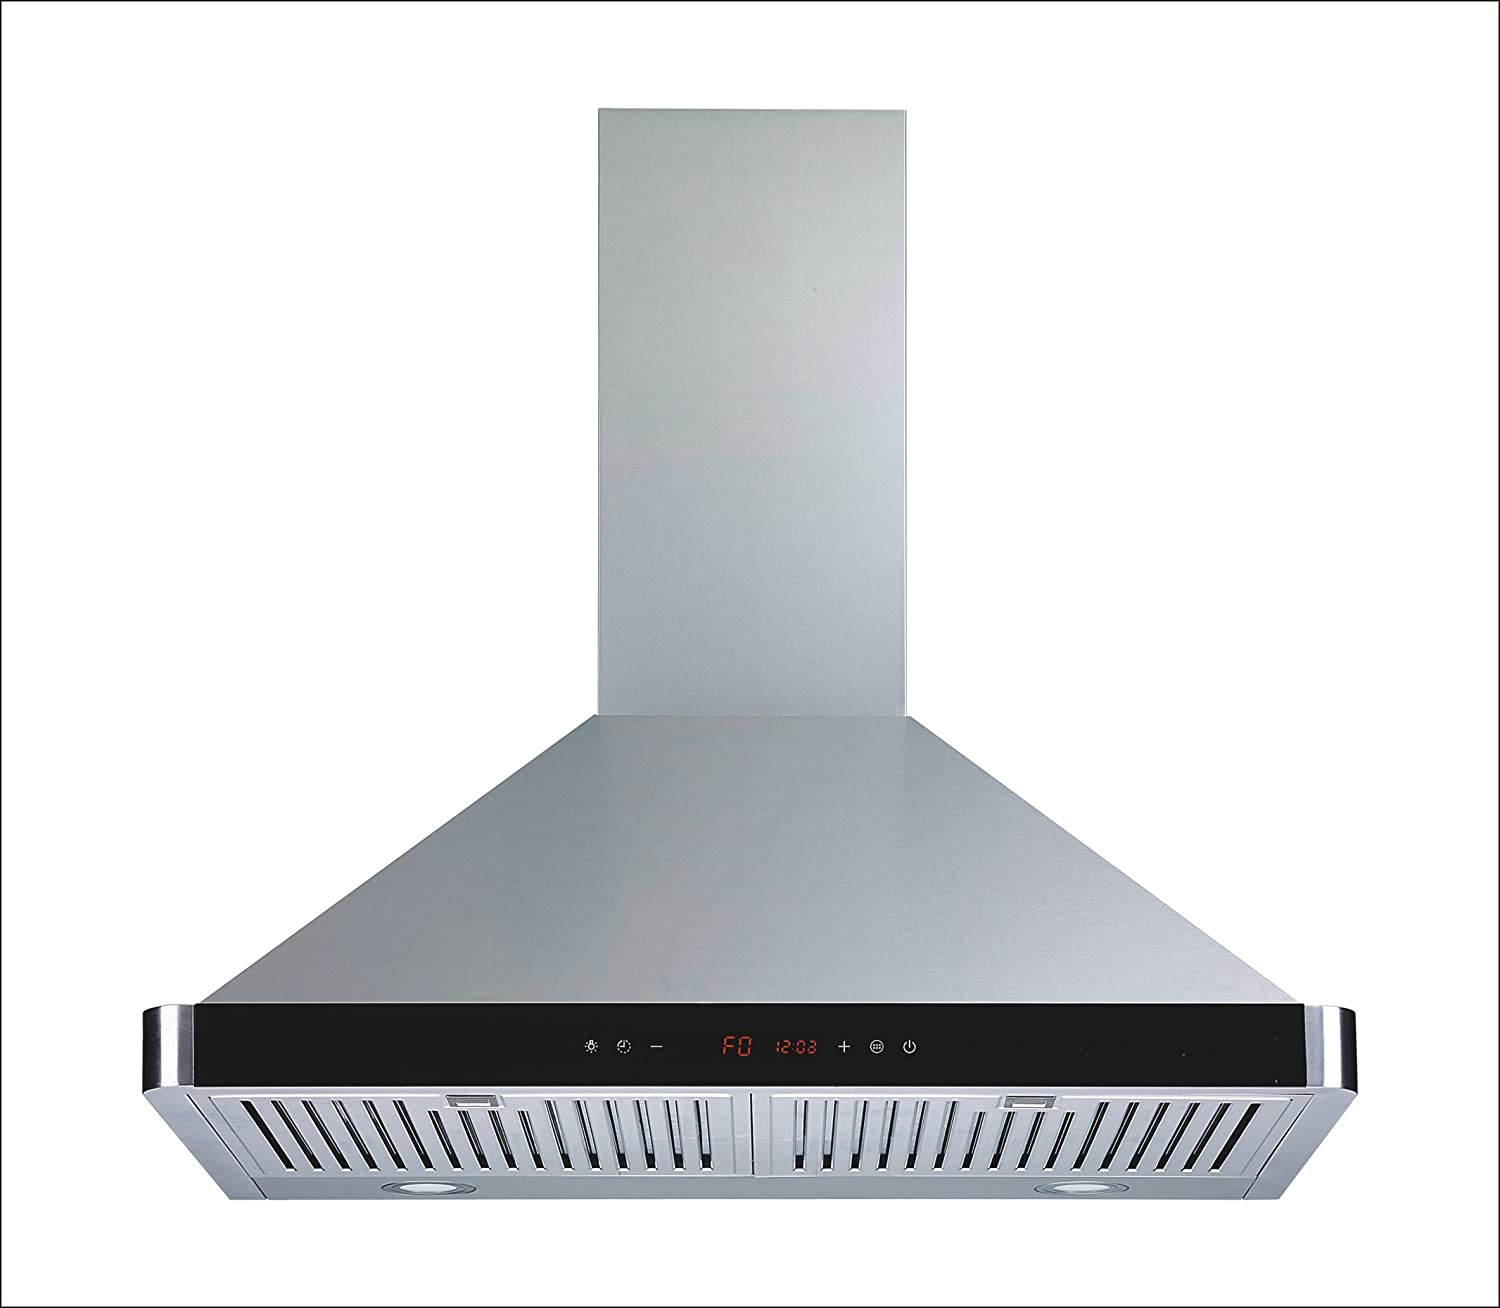 Winflo 30 Wall Mount Stainless Steel Convertible Kitchen Range Hood with 450 CFM Air Flow, Touch Control, Stainless Steel Baffle Filters and Ultra Bright LED Lights Winslyn W103B30D